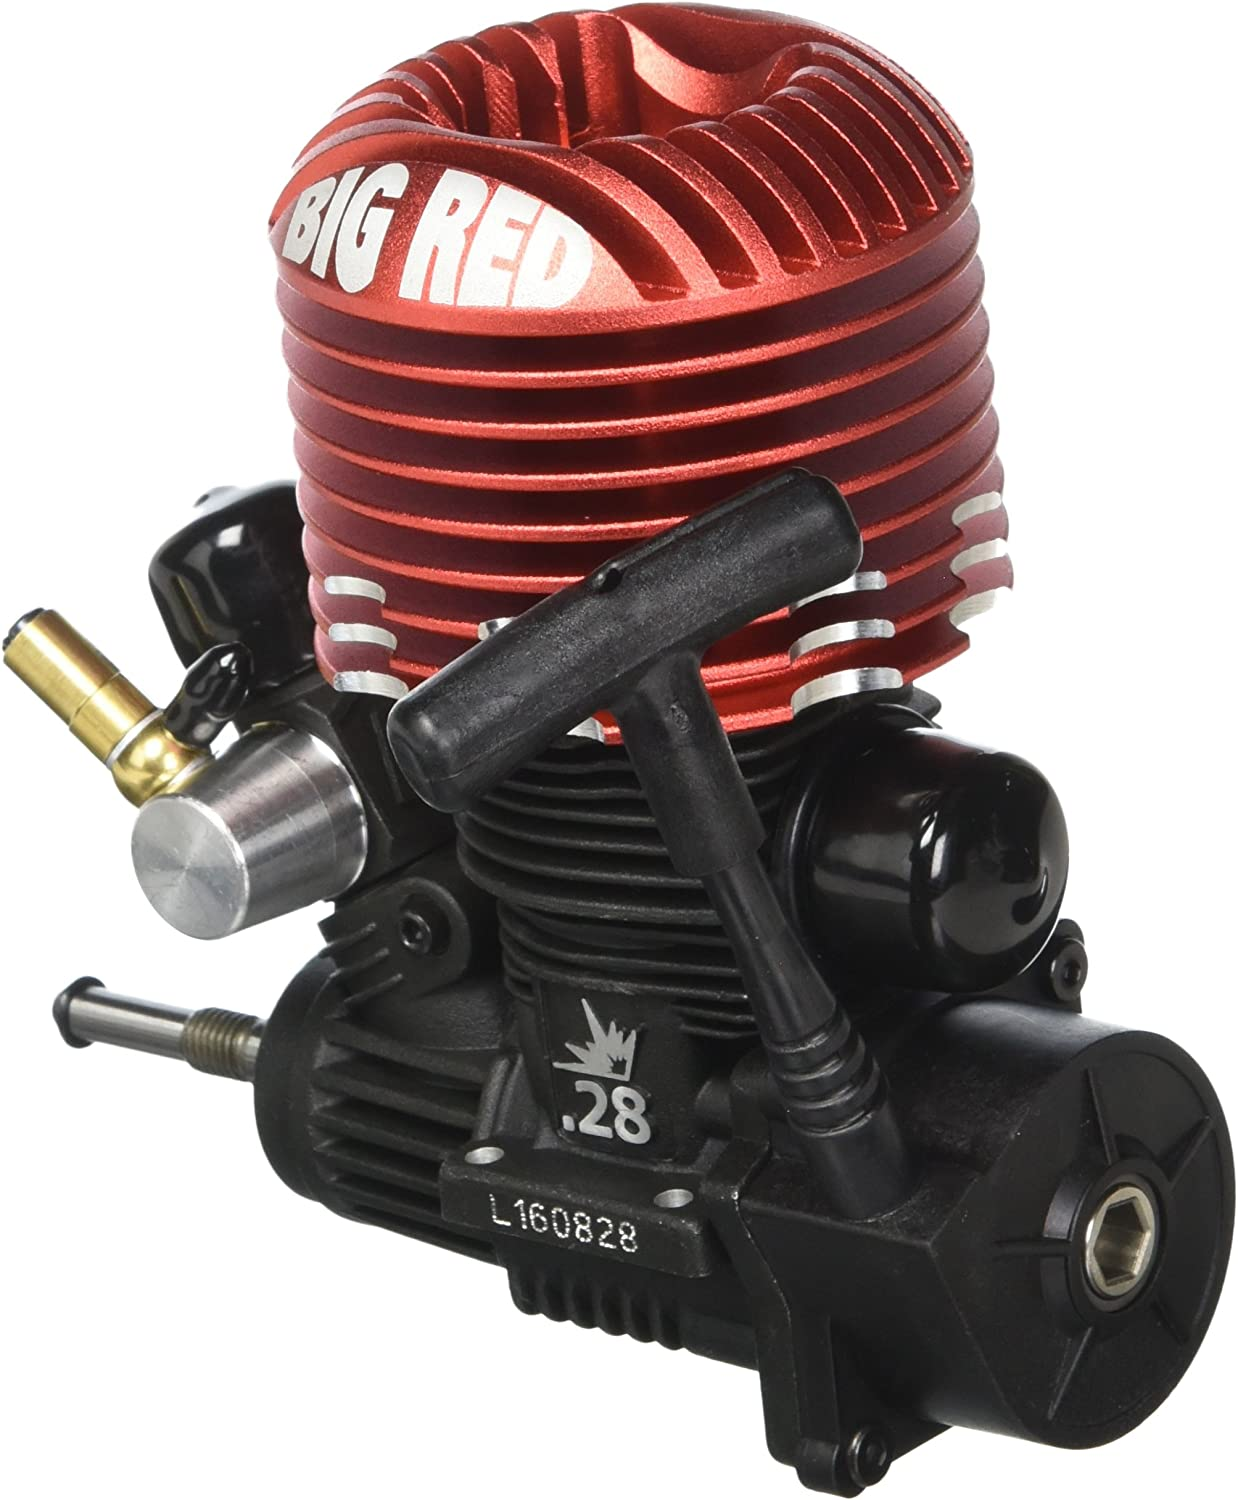 Dynamite Big Red Monster .28 Mach 2 Engine with Pull/Spin Start, DYN0992